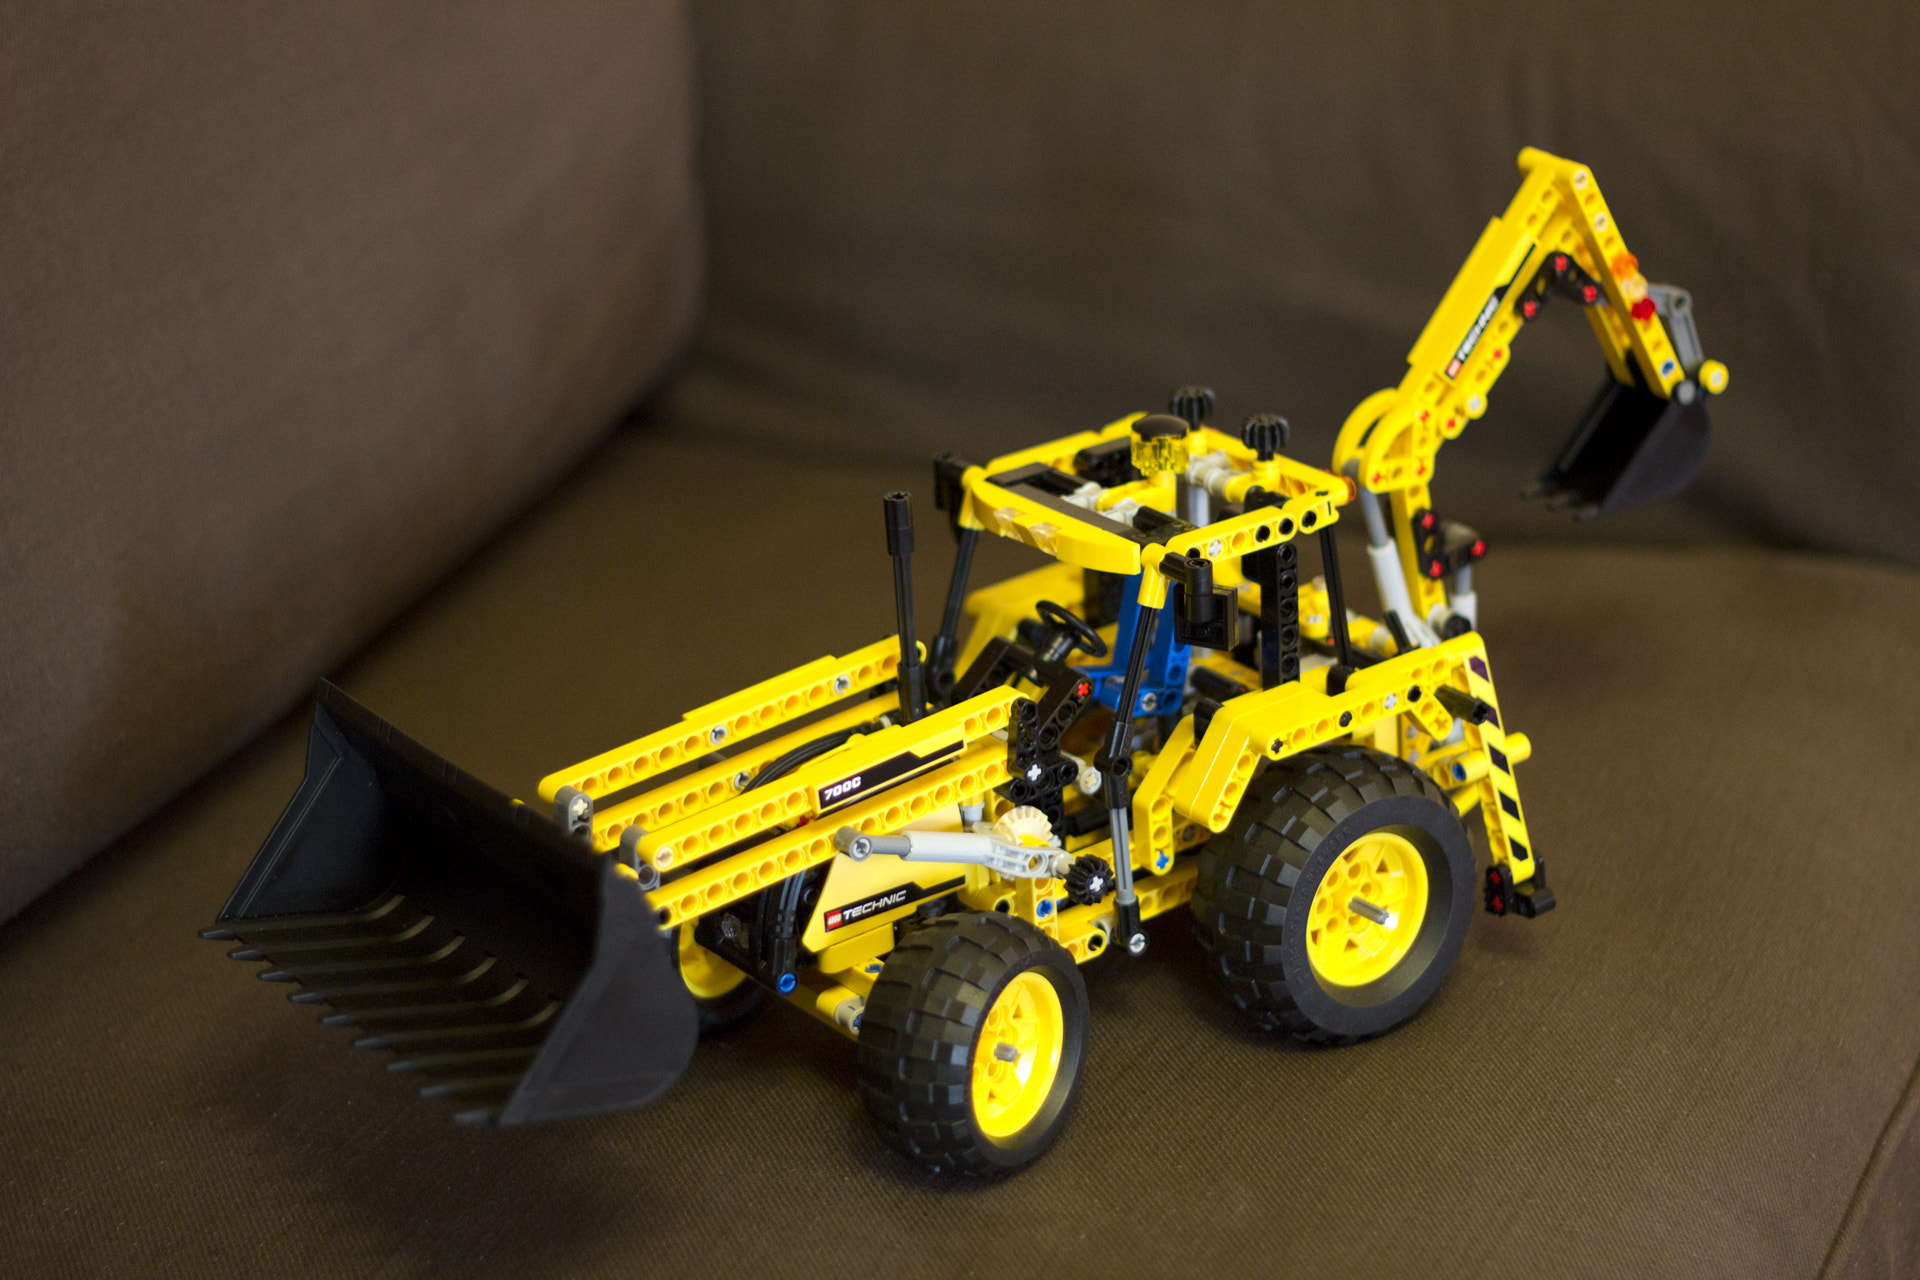 Photograph LEGO Technic (8069) Backhoe Loader by Evgeny Sterkhov on 500px